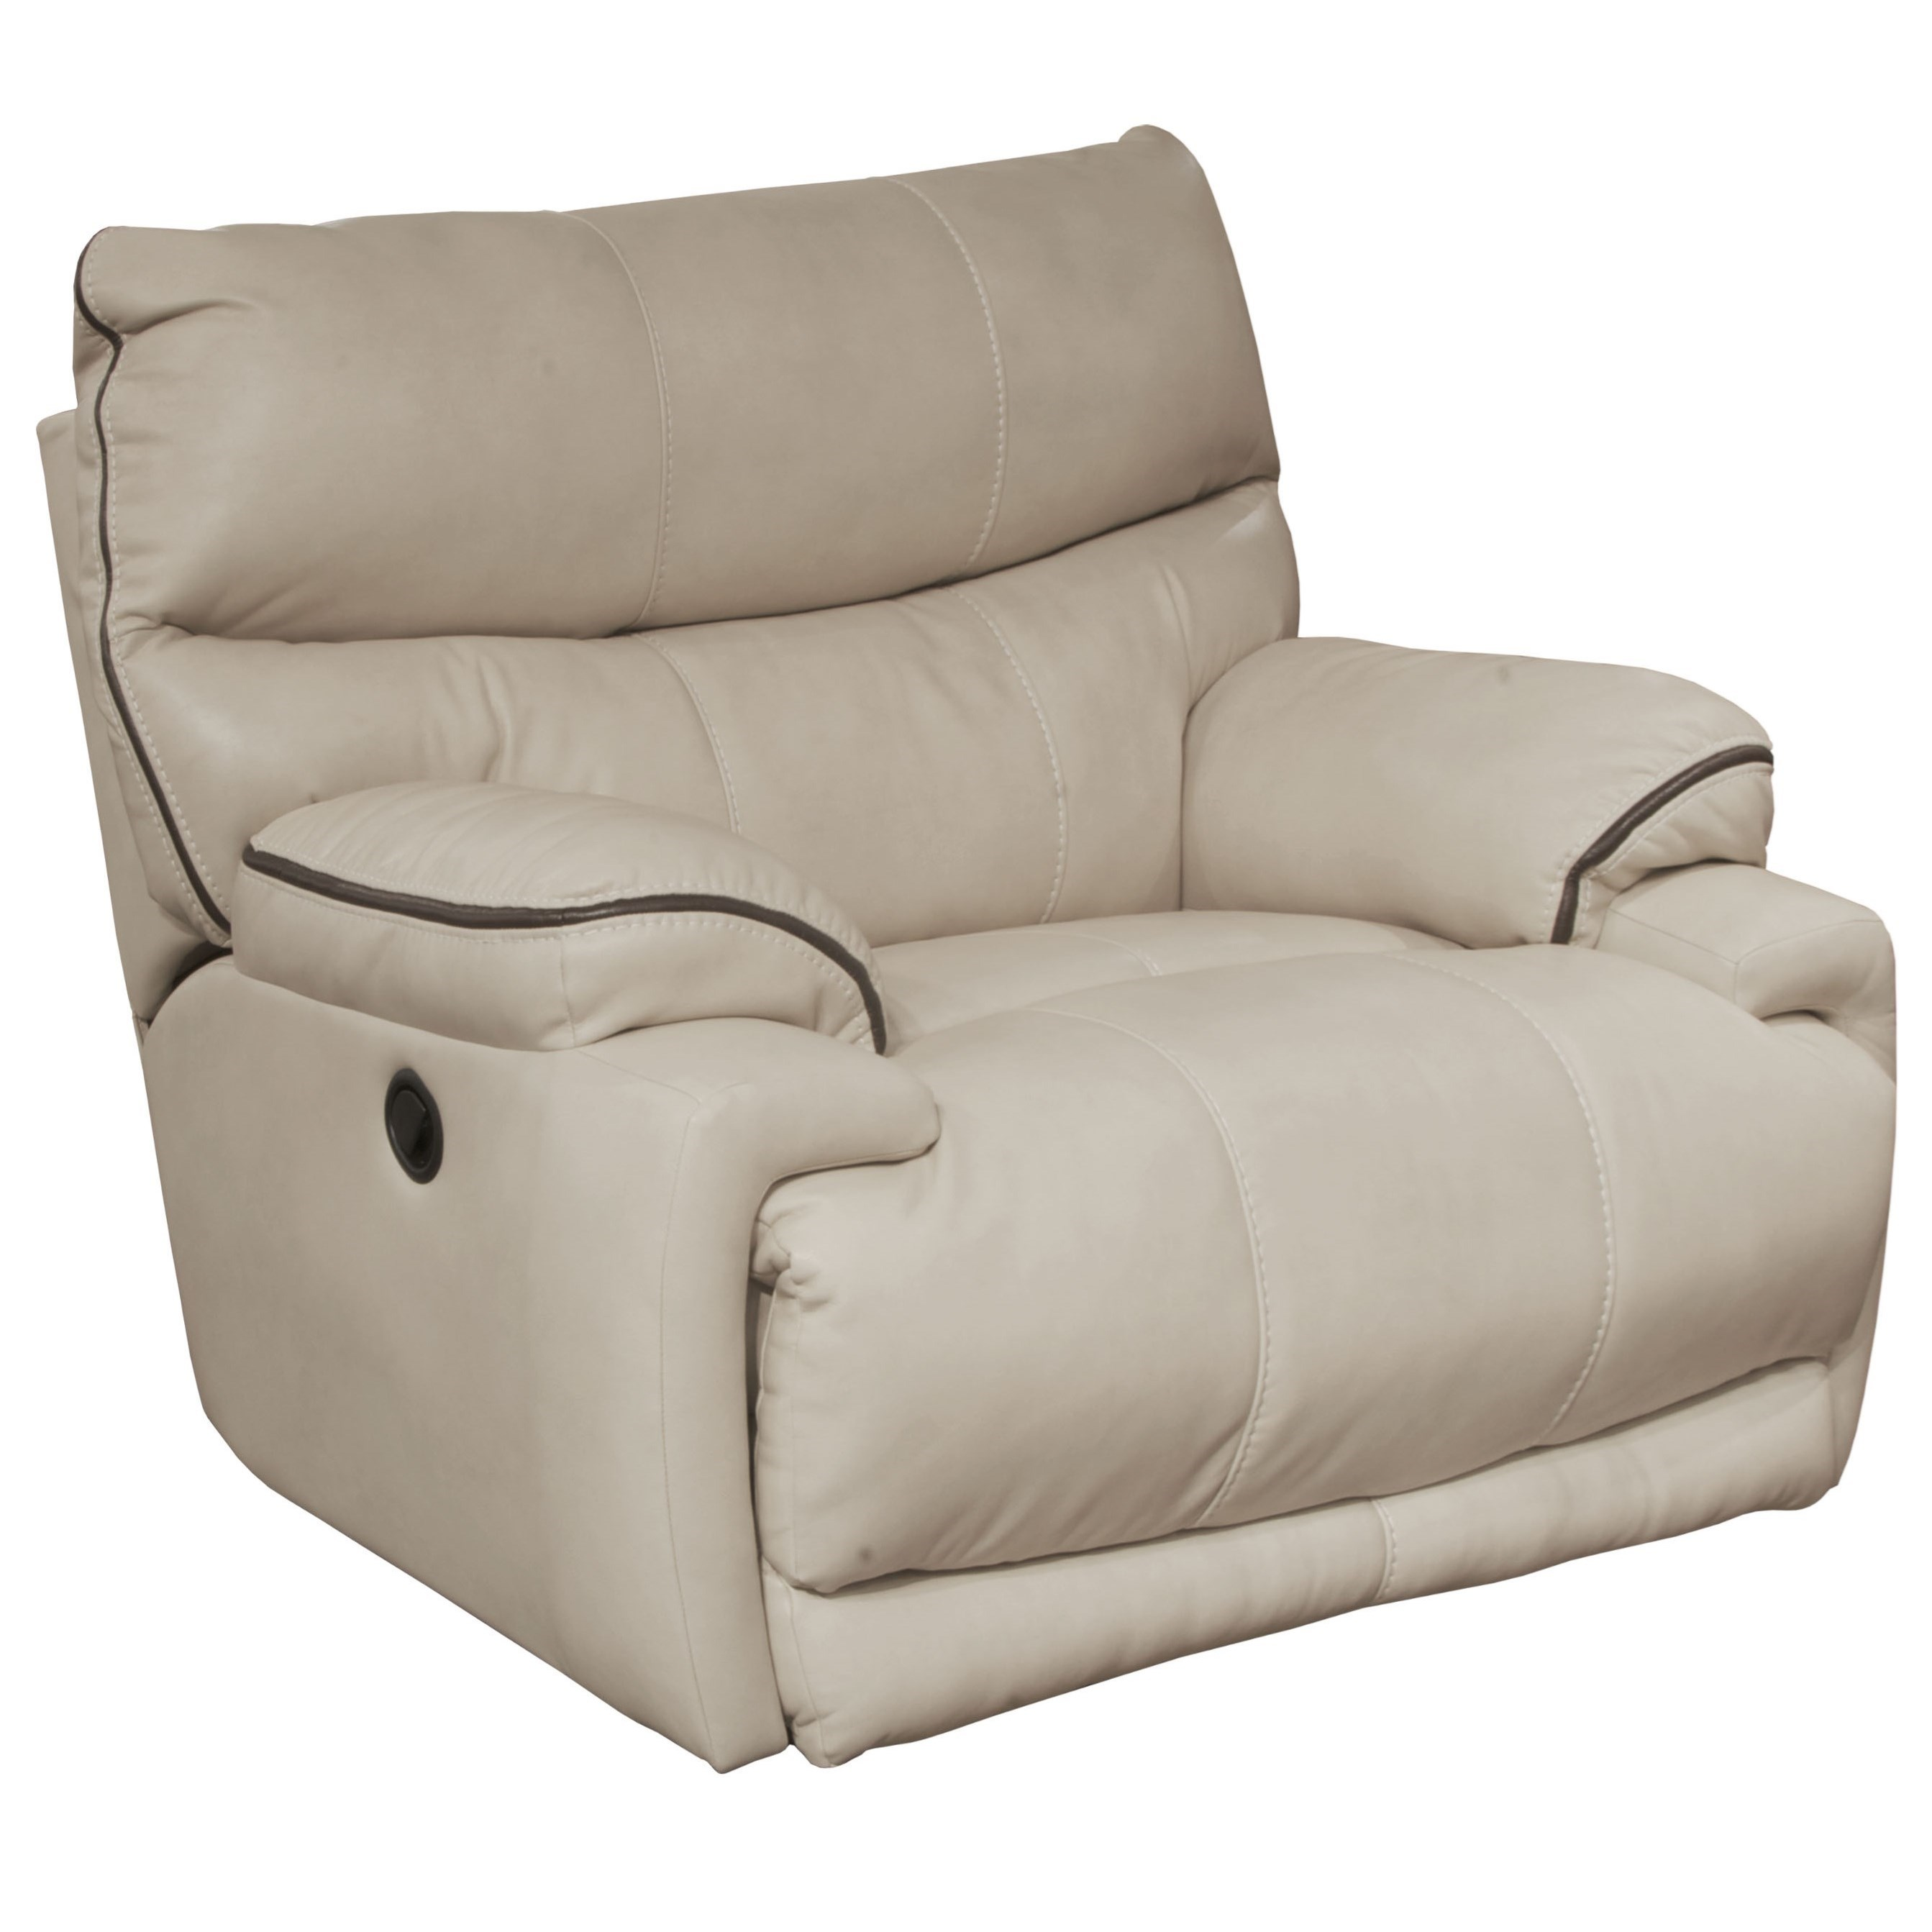 Catnapper Larkin Lay-Flat Recliner - Item Number 13907-1161-16-  sc 1 st  Household Furniture & Catnapper Larkin Lay-Flat Recliner - Household Furniture - Three ... islam-shia.org